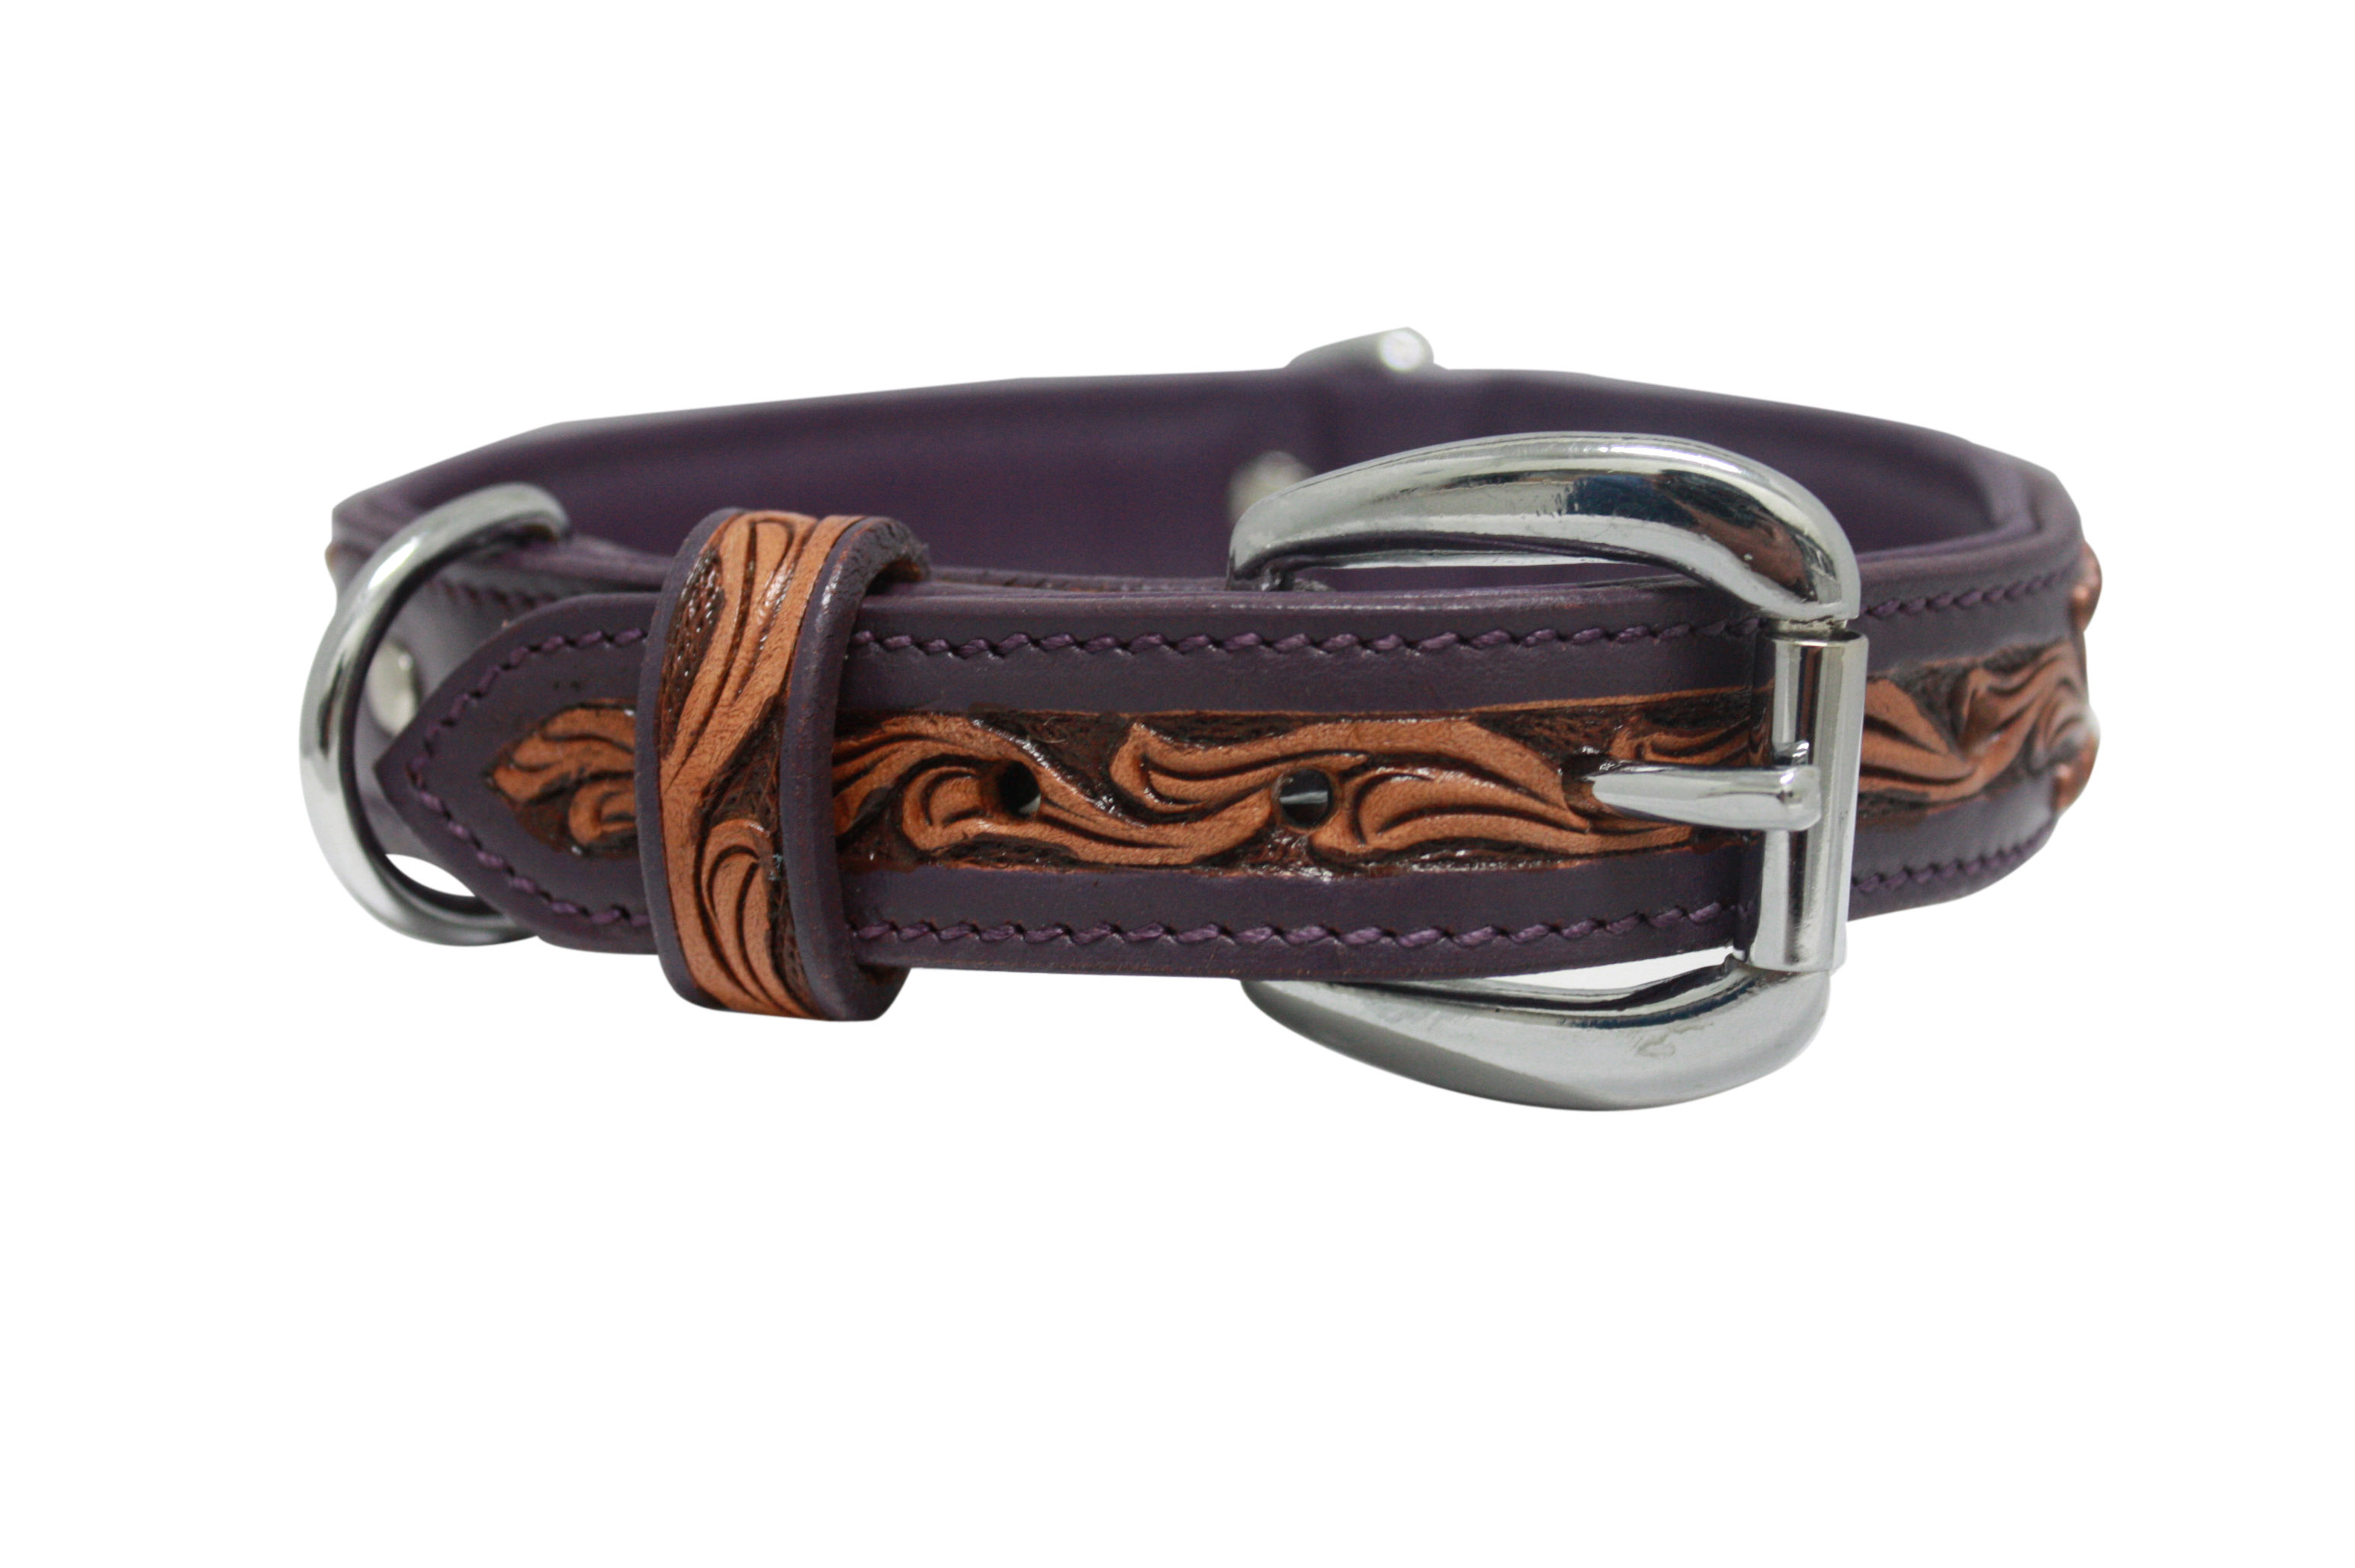 Hot Dog The San Antonio - Luxury Leather Dog Collar